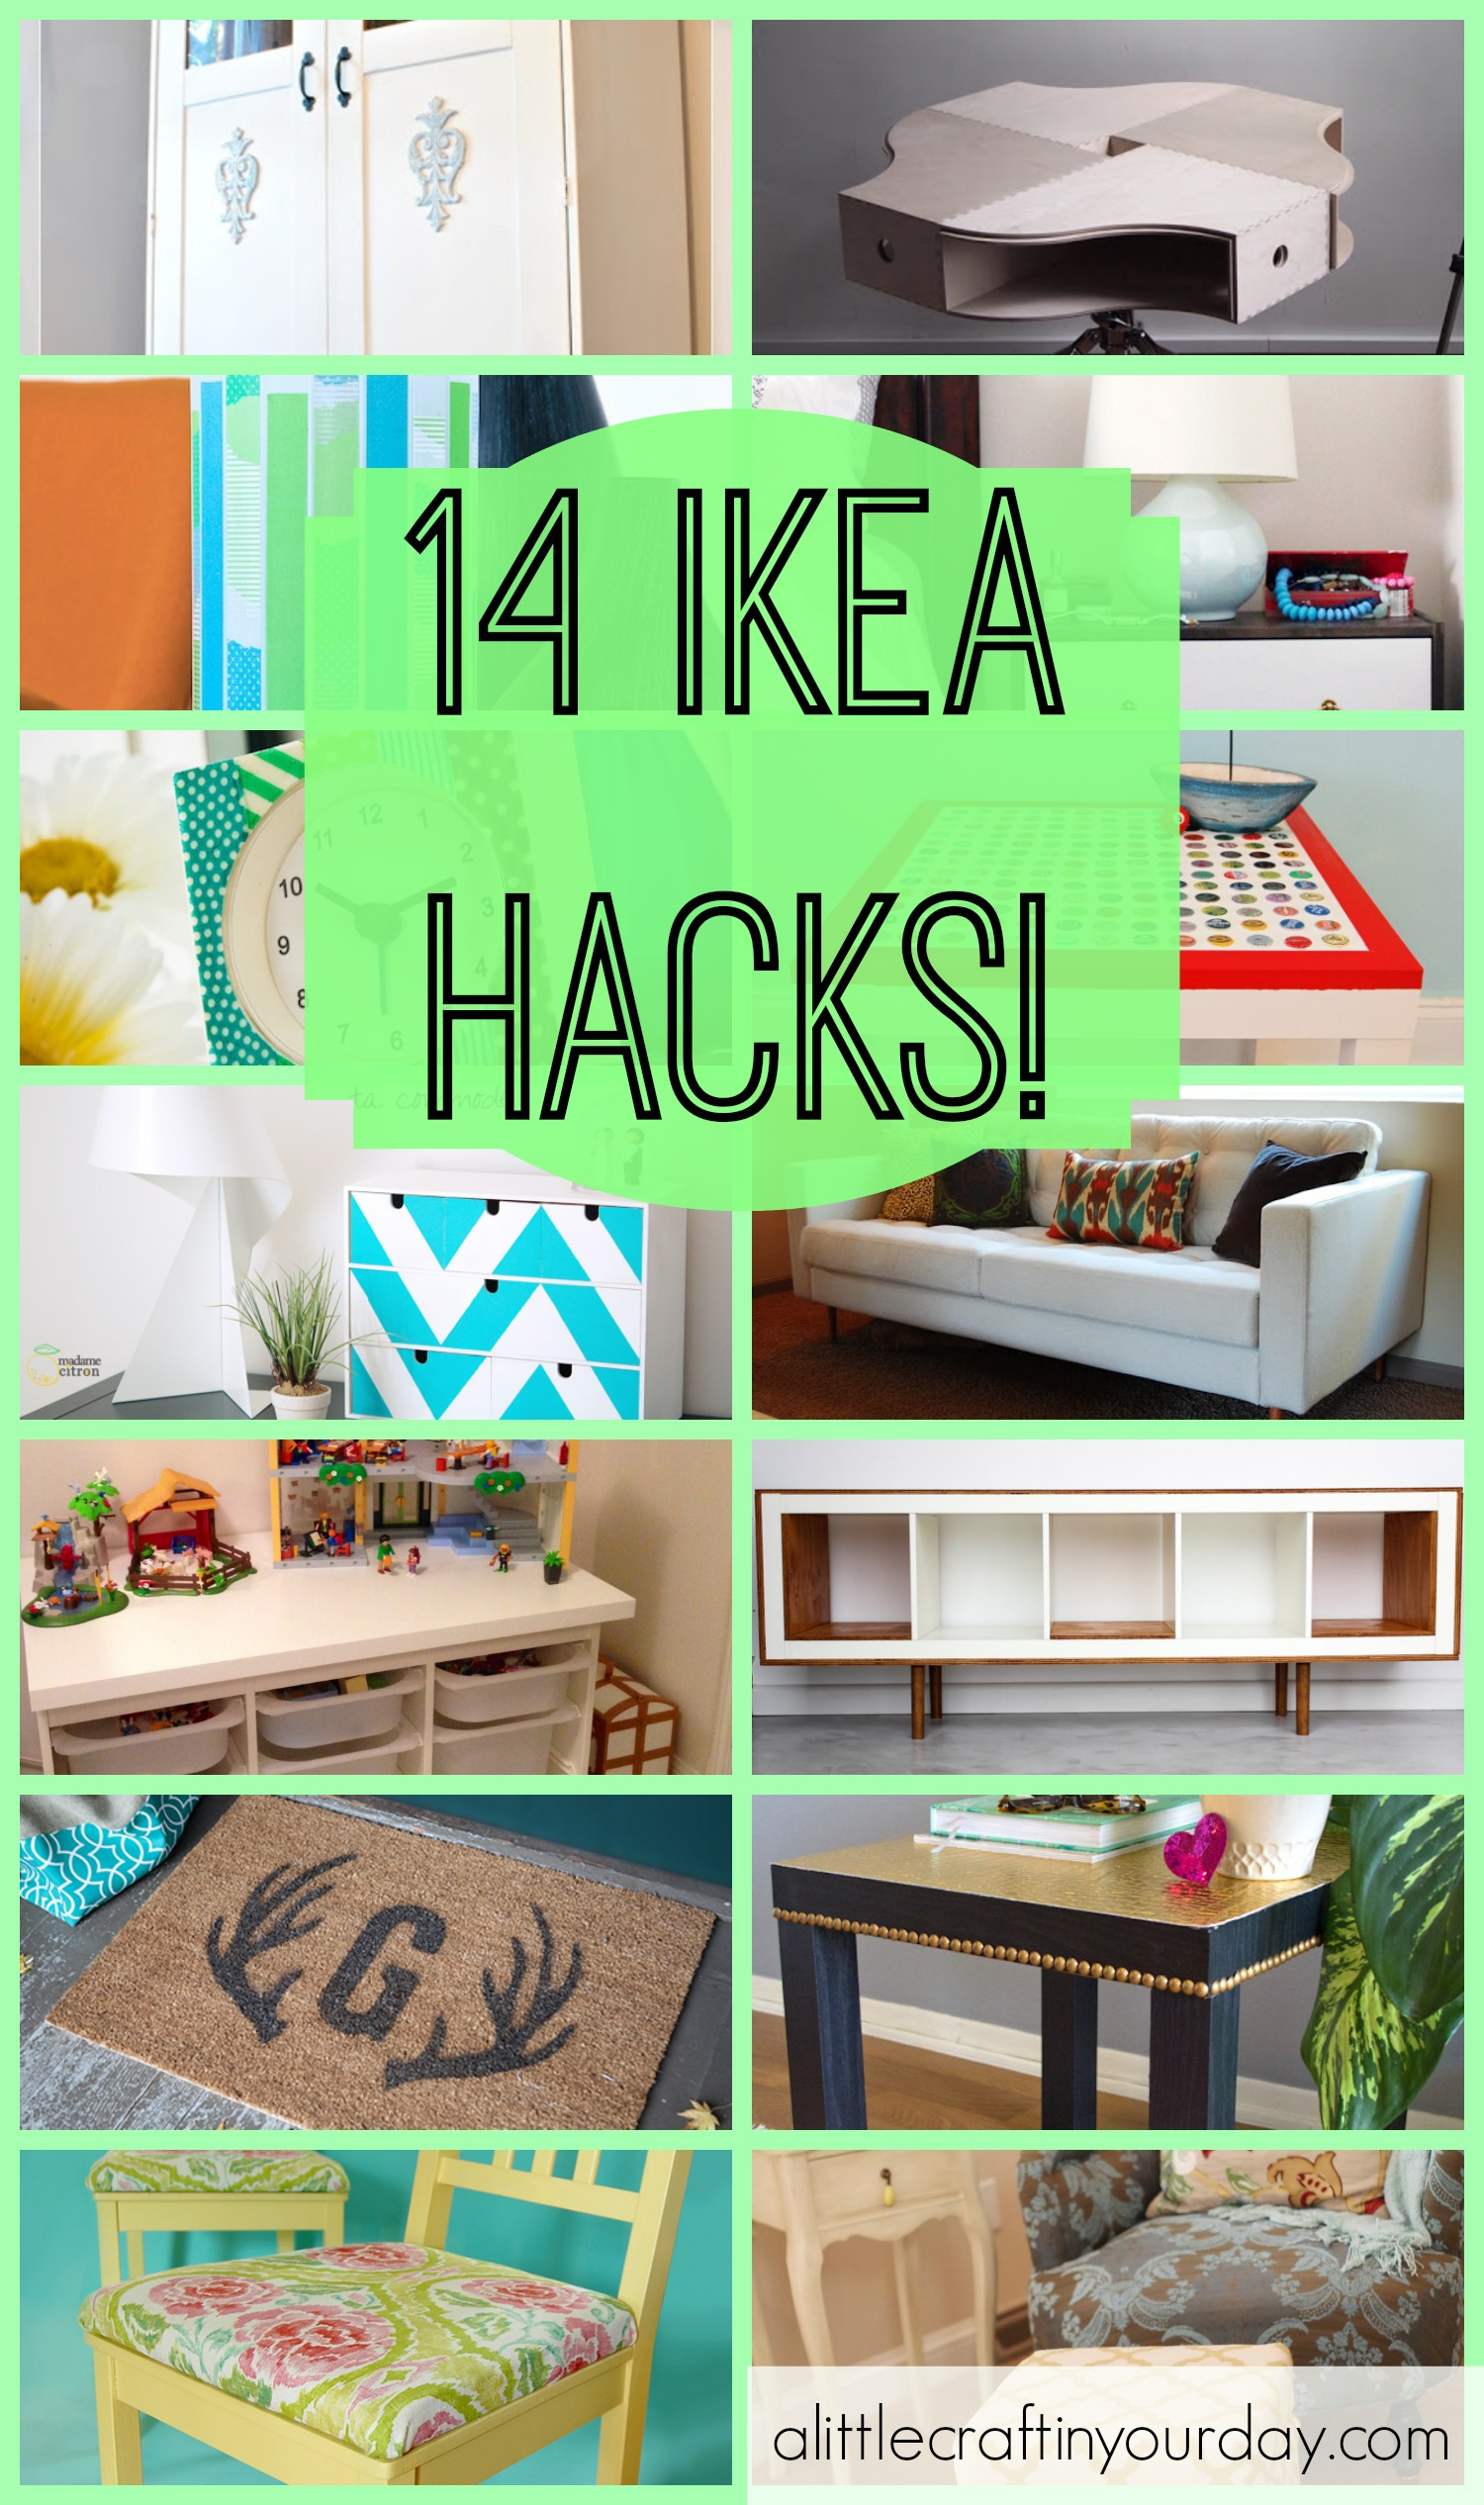 14 ikea hacks a little craft in your day. Black Bedroom Furniture Sets. Home Design Ideas